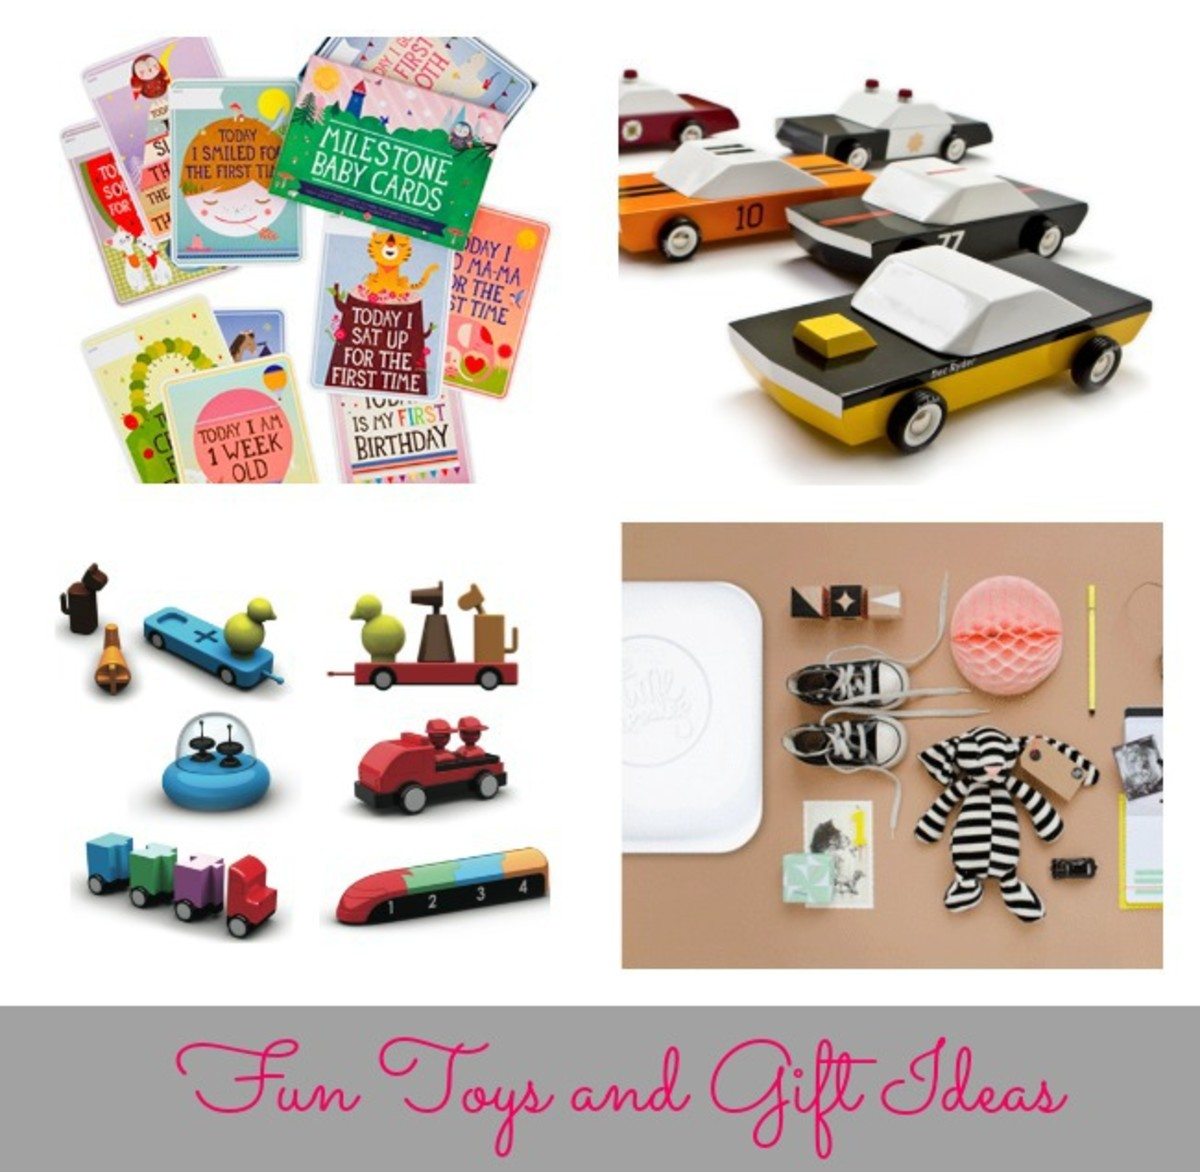 cool products for kids, gifts, gifts for babies